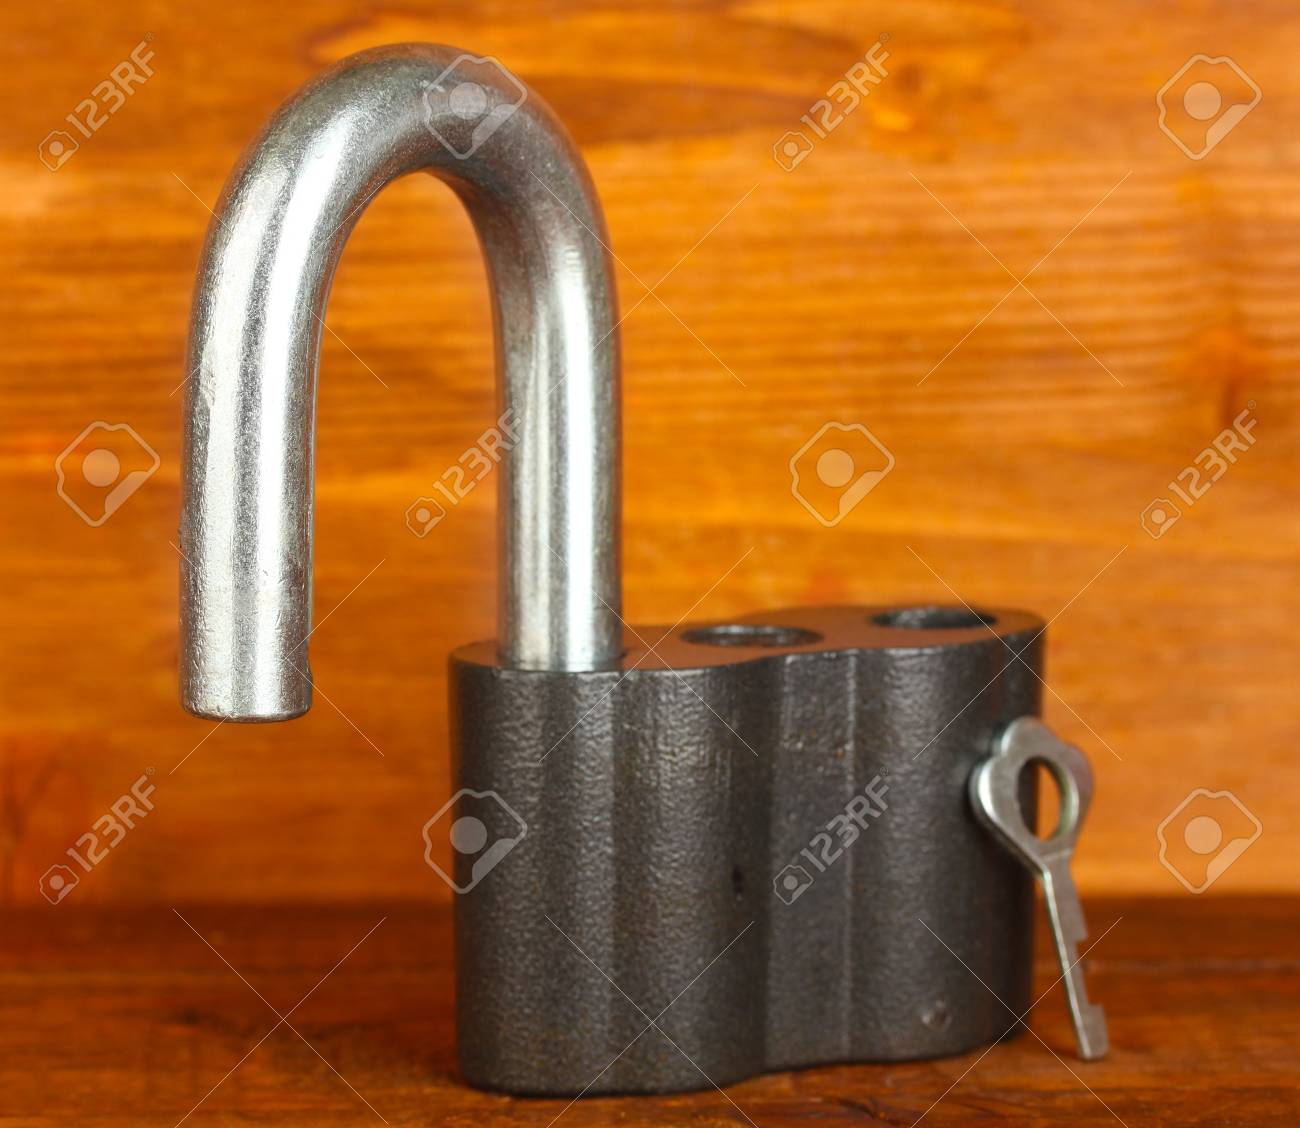 old padlock with key on wooden background close-up Stock Photo - 14110597